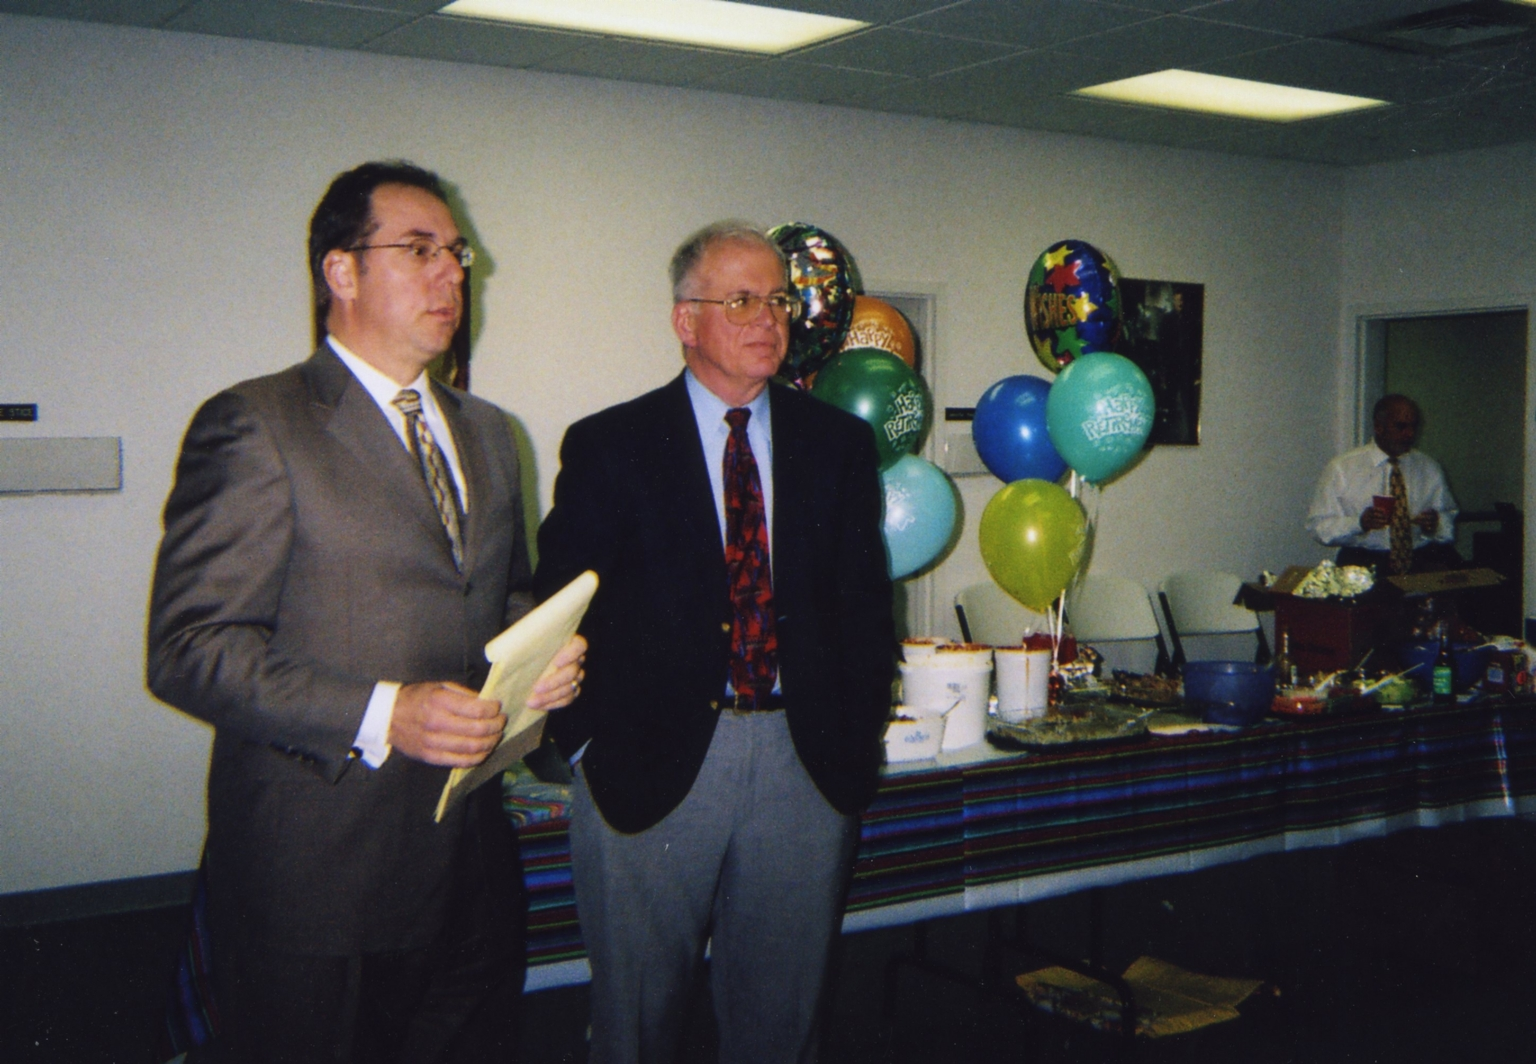 Vice-president/general manager Bill Evans and reporter/anchor Ernie Mitchell at Ernie's retirement